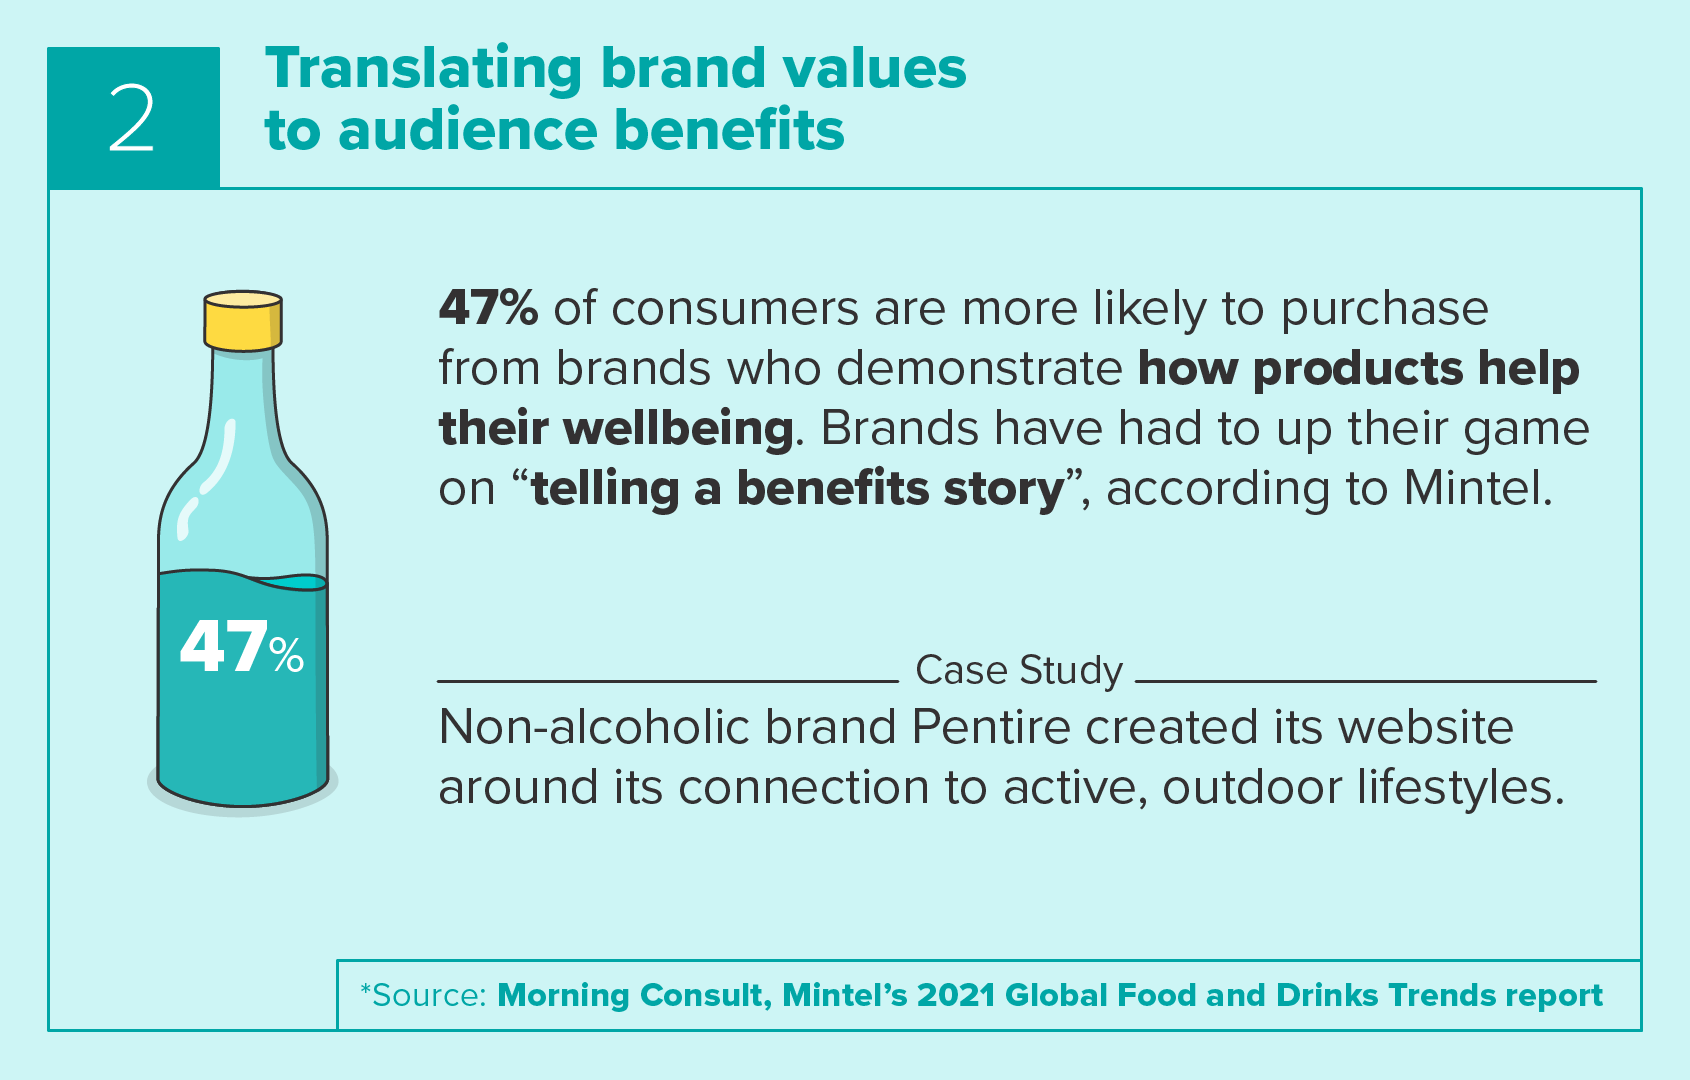 Translating brand vales to audience benefits